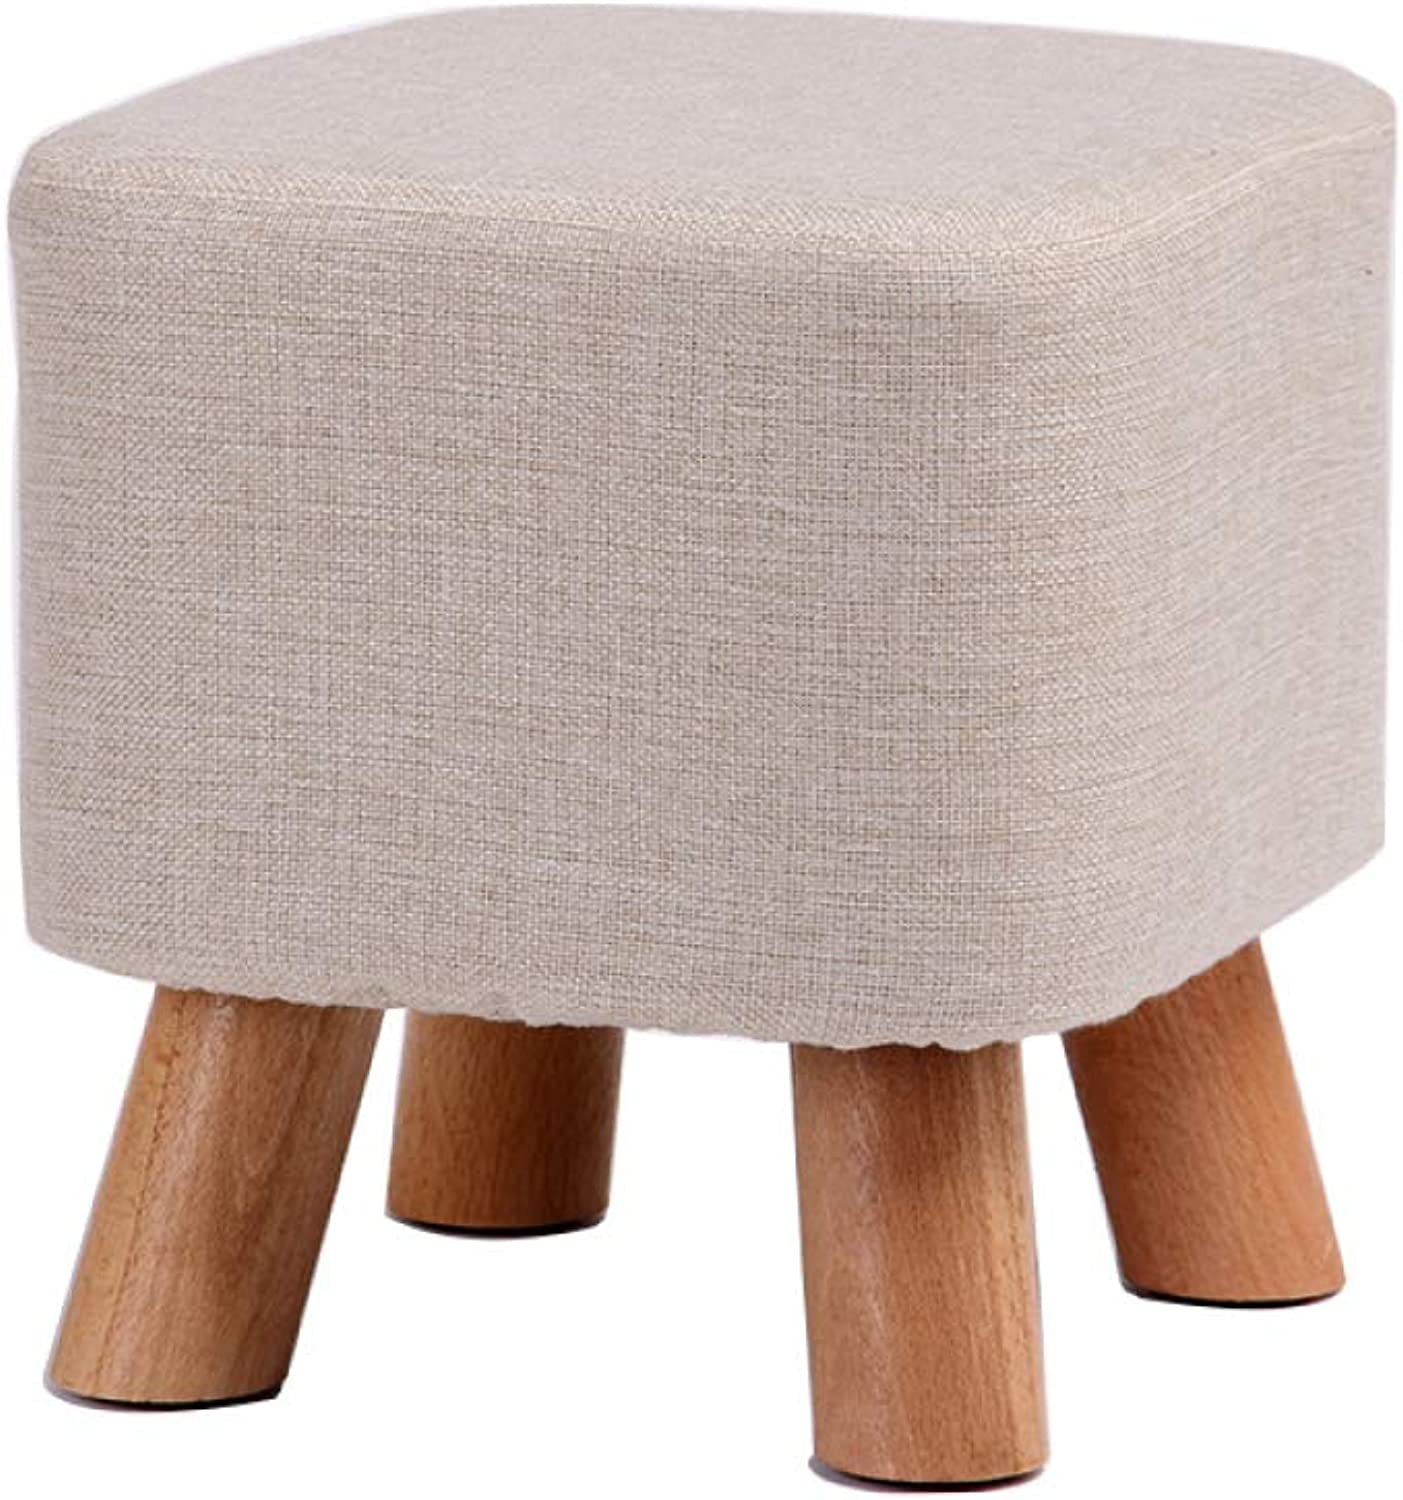 SSHHI Stool,Cloth Beech Four feet Square Comfortable Stools,Change shoes Bench Living Room Bedroom Multifunction Household